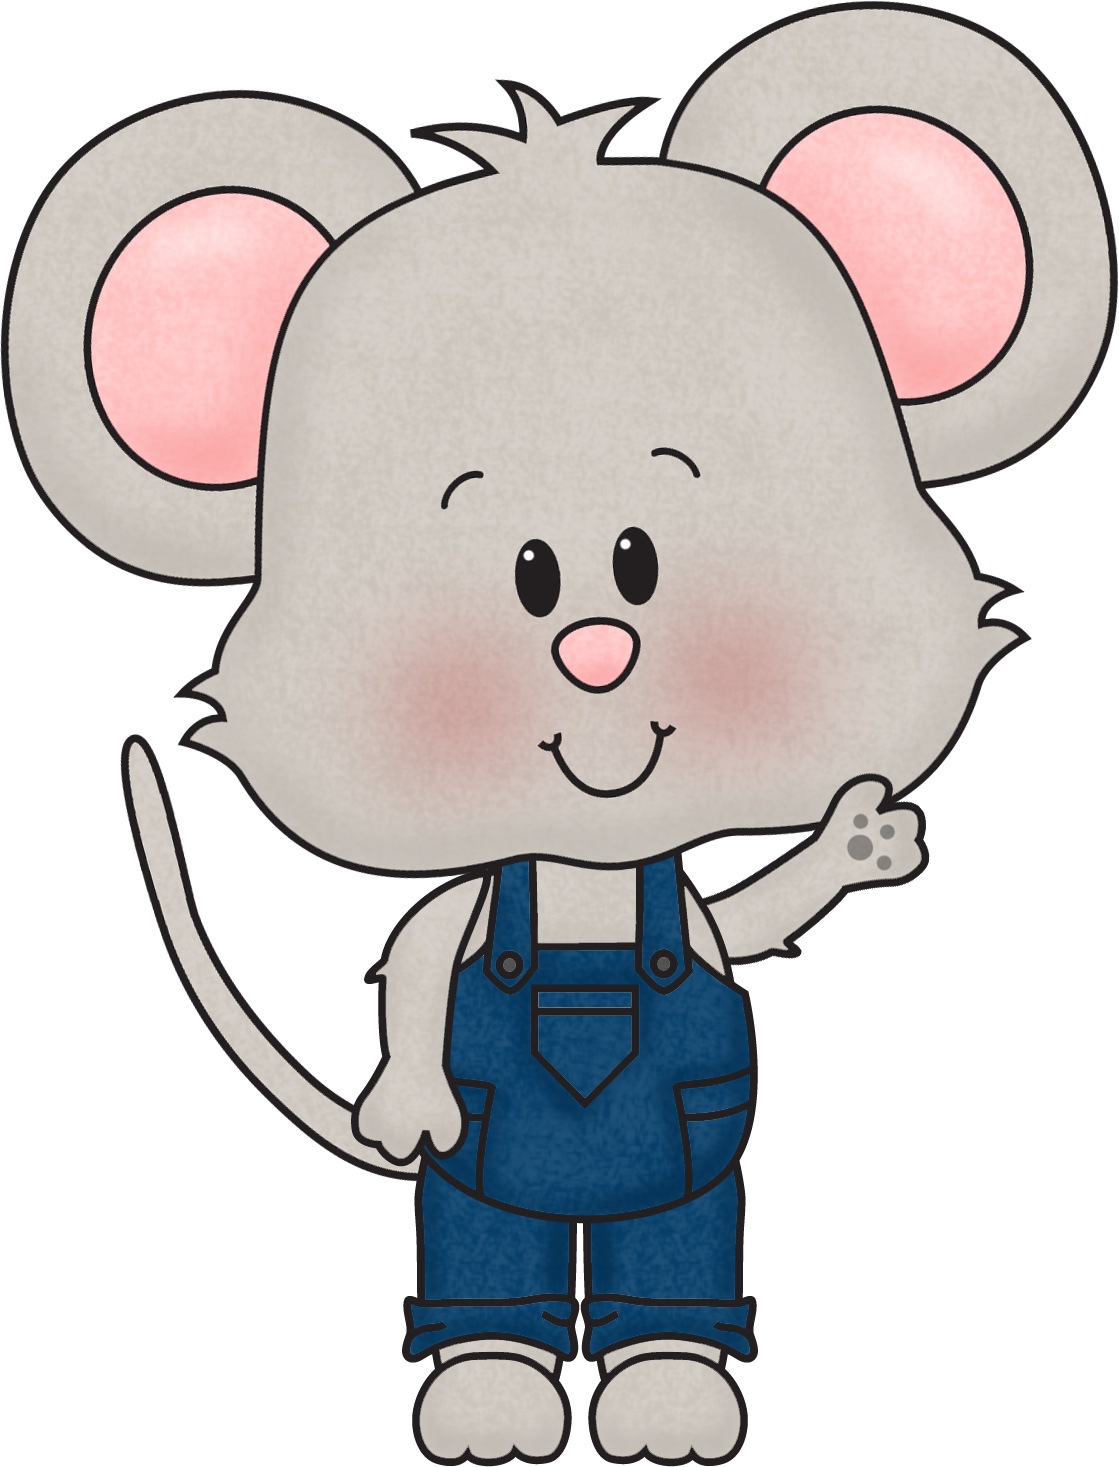 Free Girl Mouse Cliparts, Download Free Clip Art, Free Clip Art on.